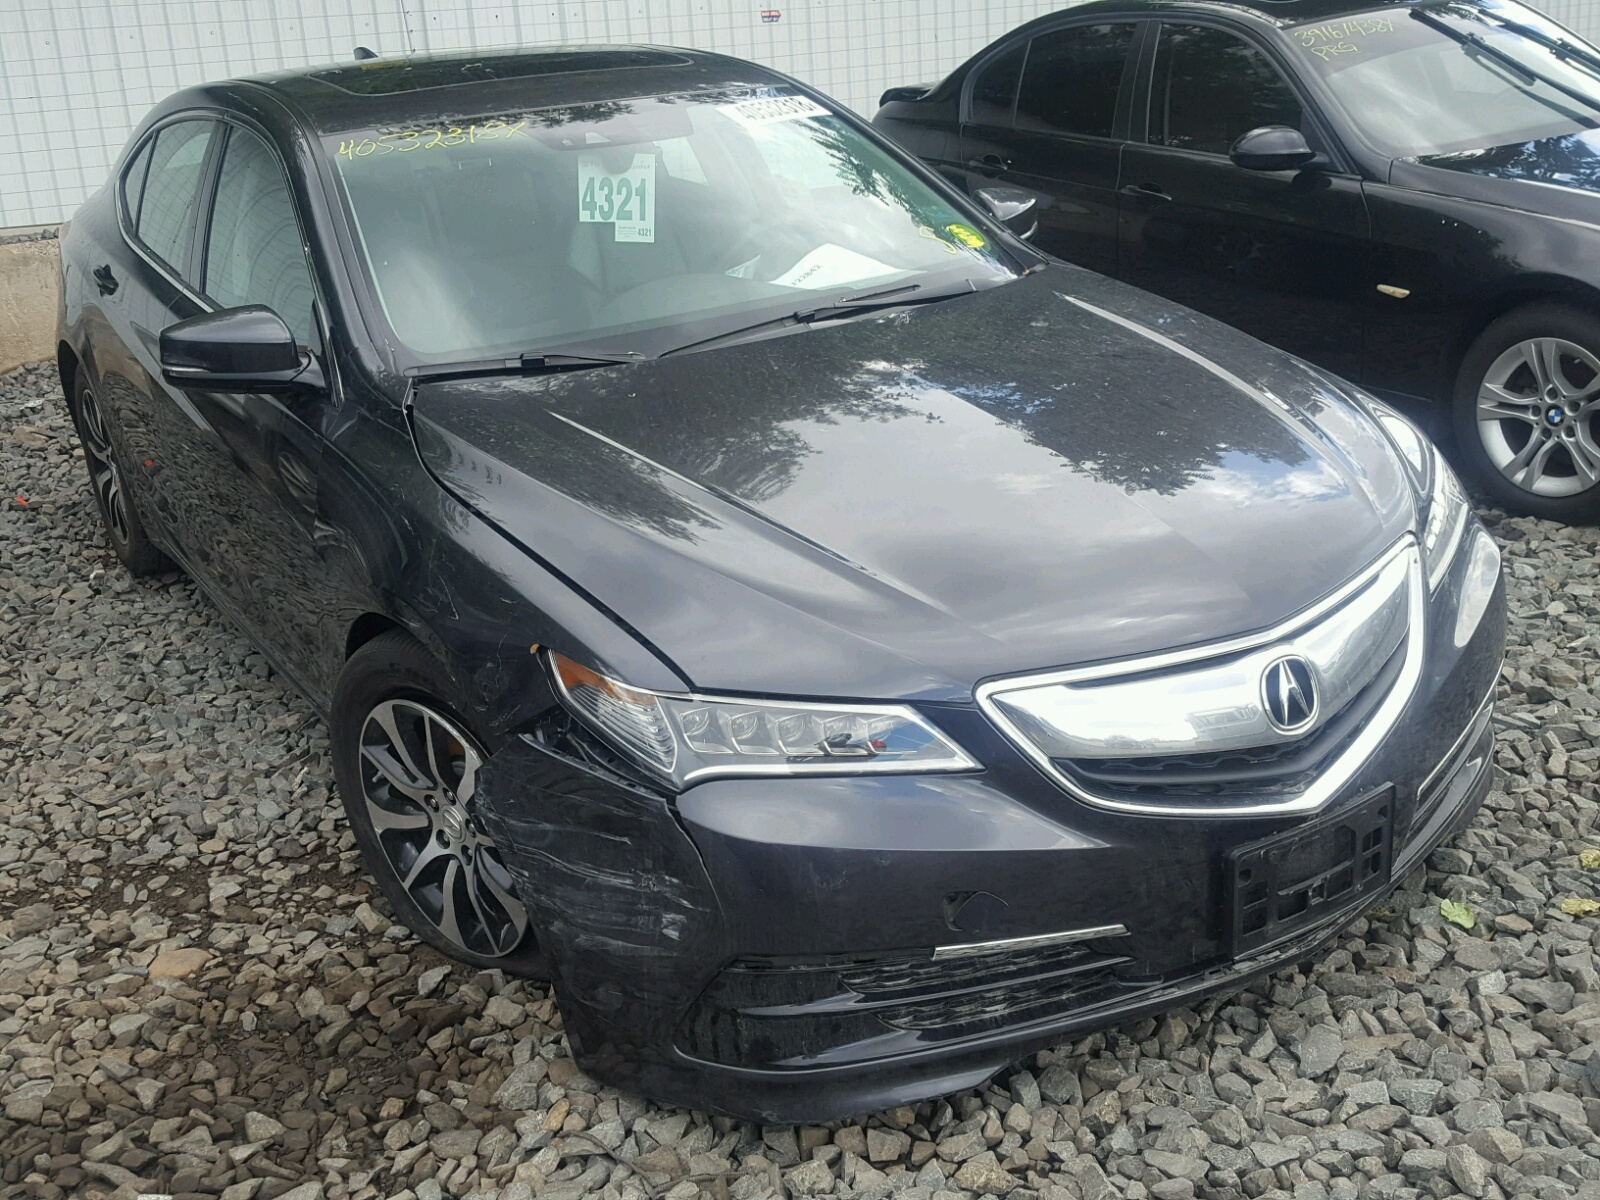 Salvage 2015 Acura TLX TECH for sale